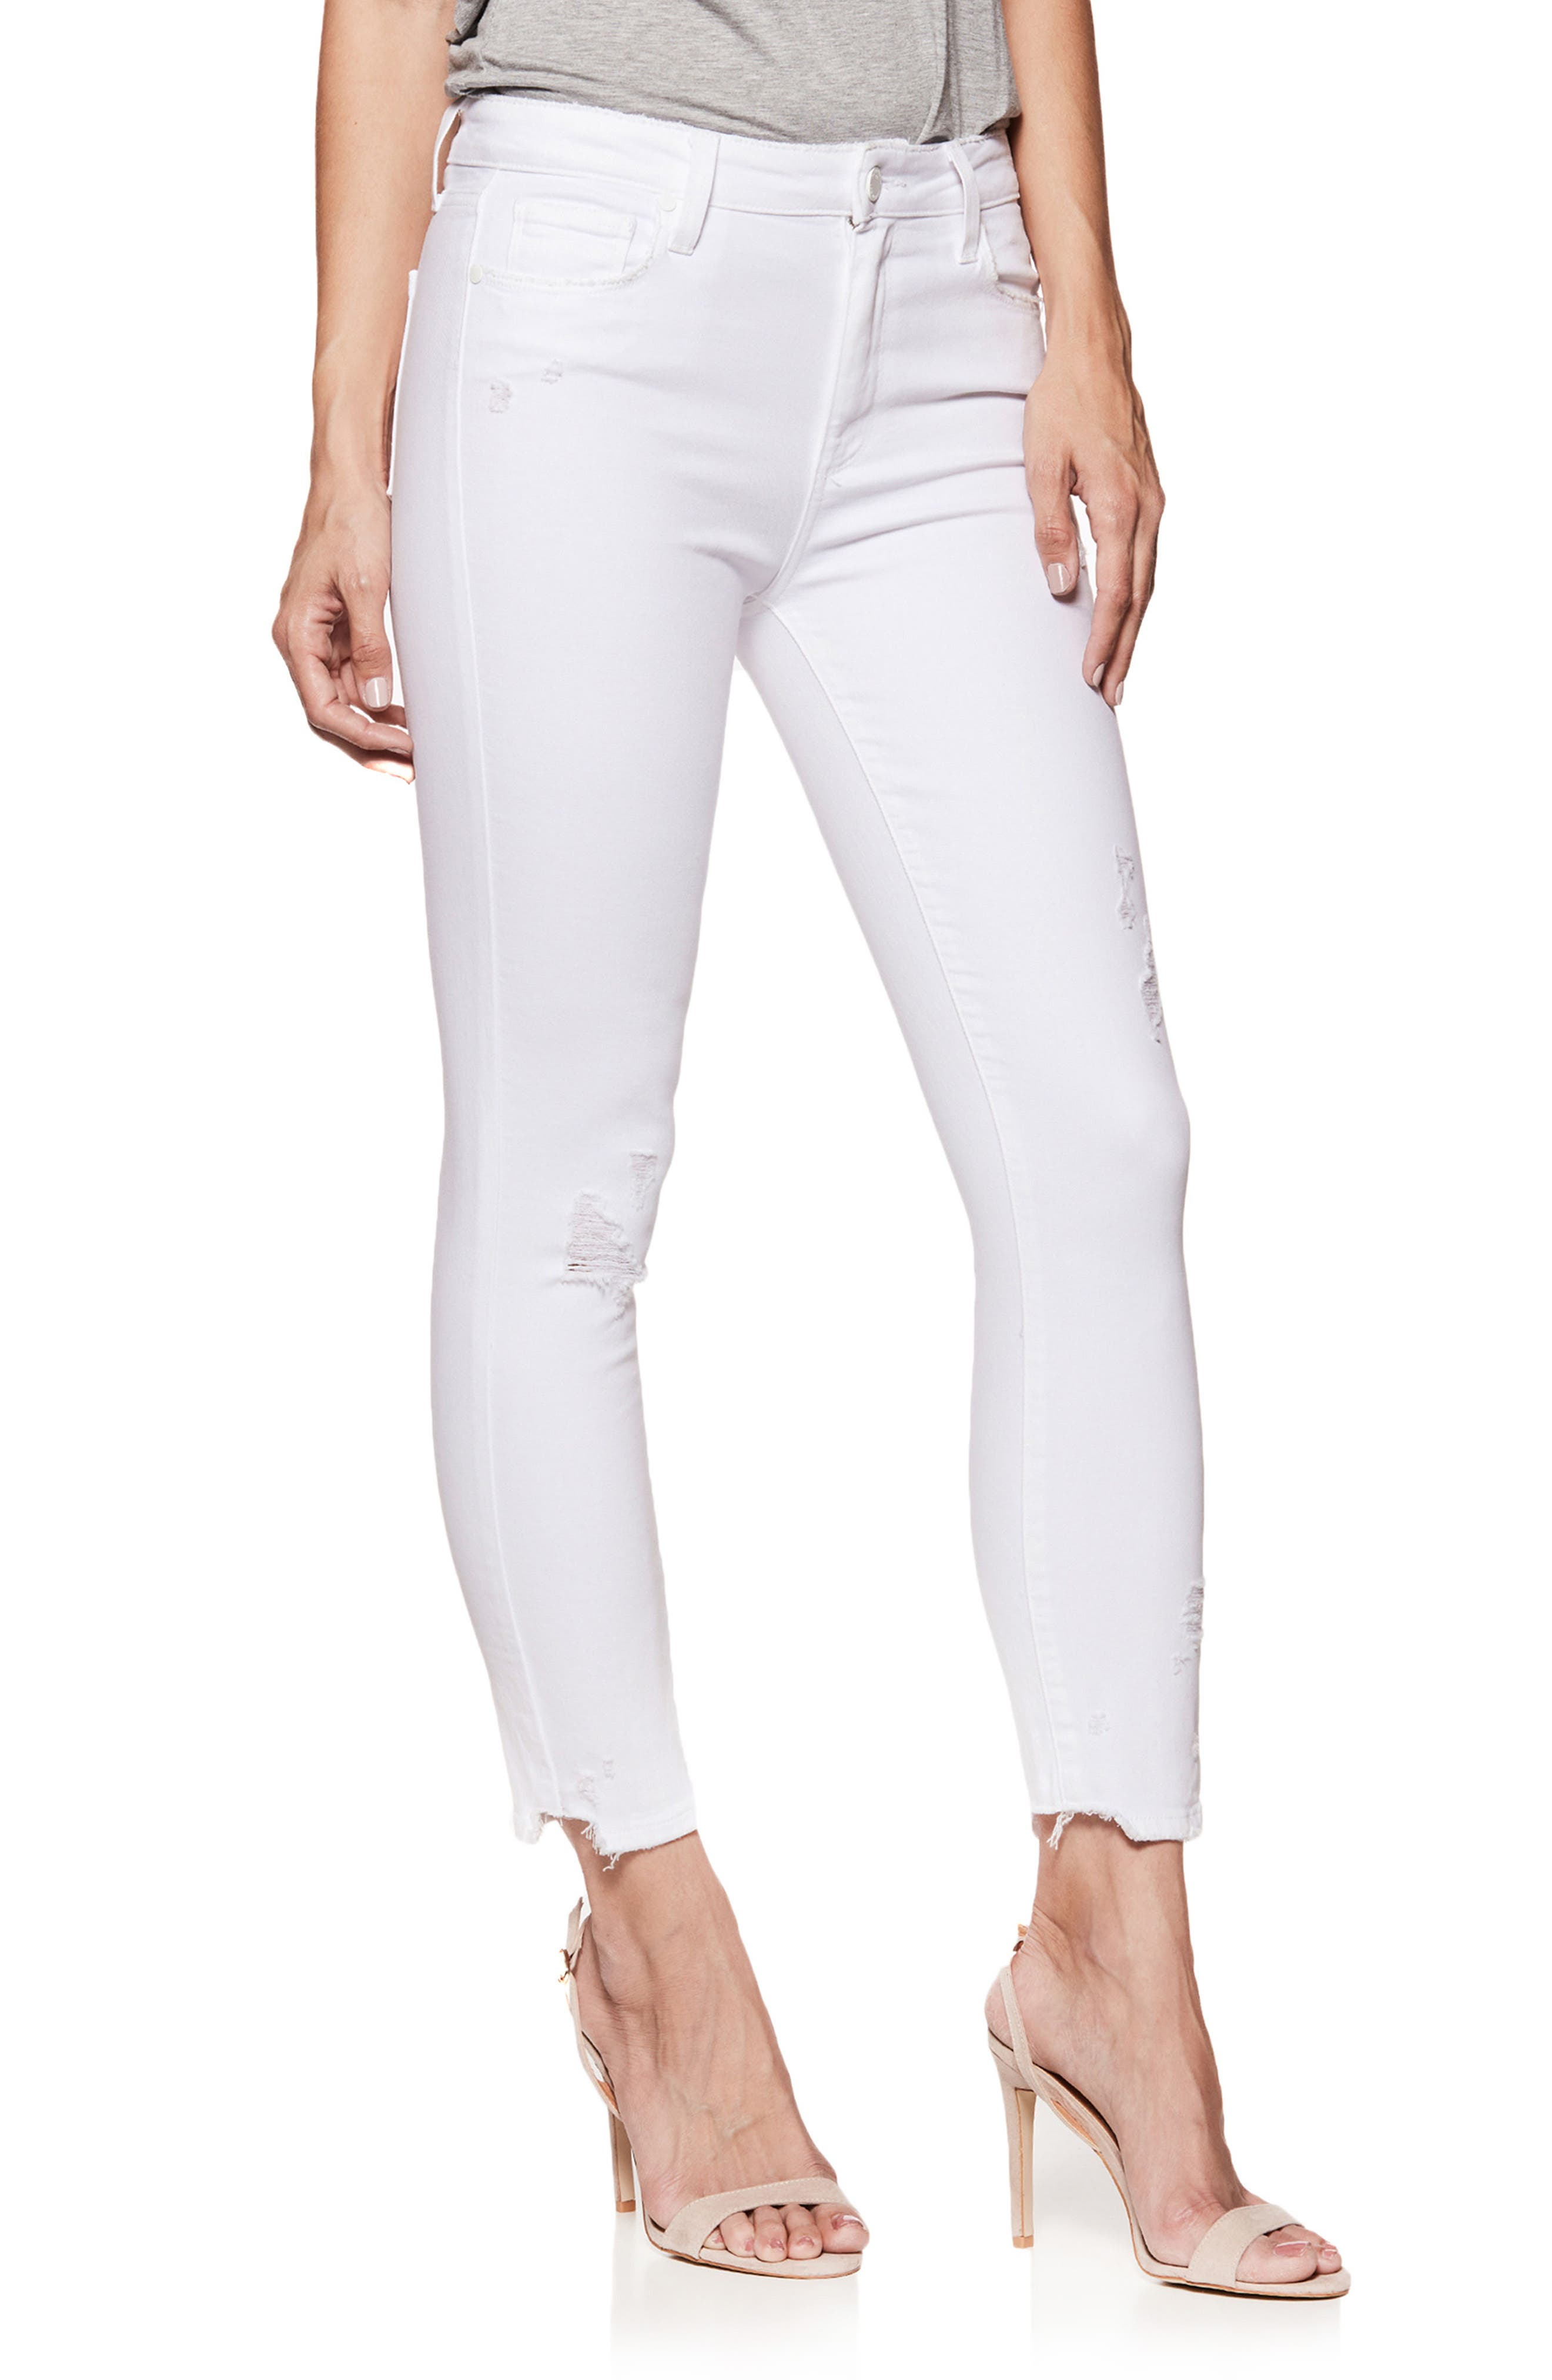 Hoxton High Waist Ankle Skinny Jeans,                         Main,                         color, CRISP WHITE DESTRUCTED